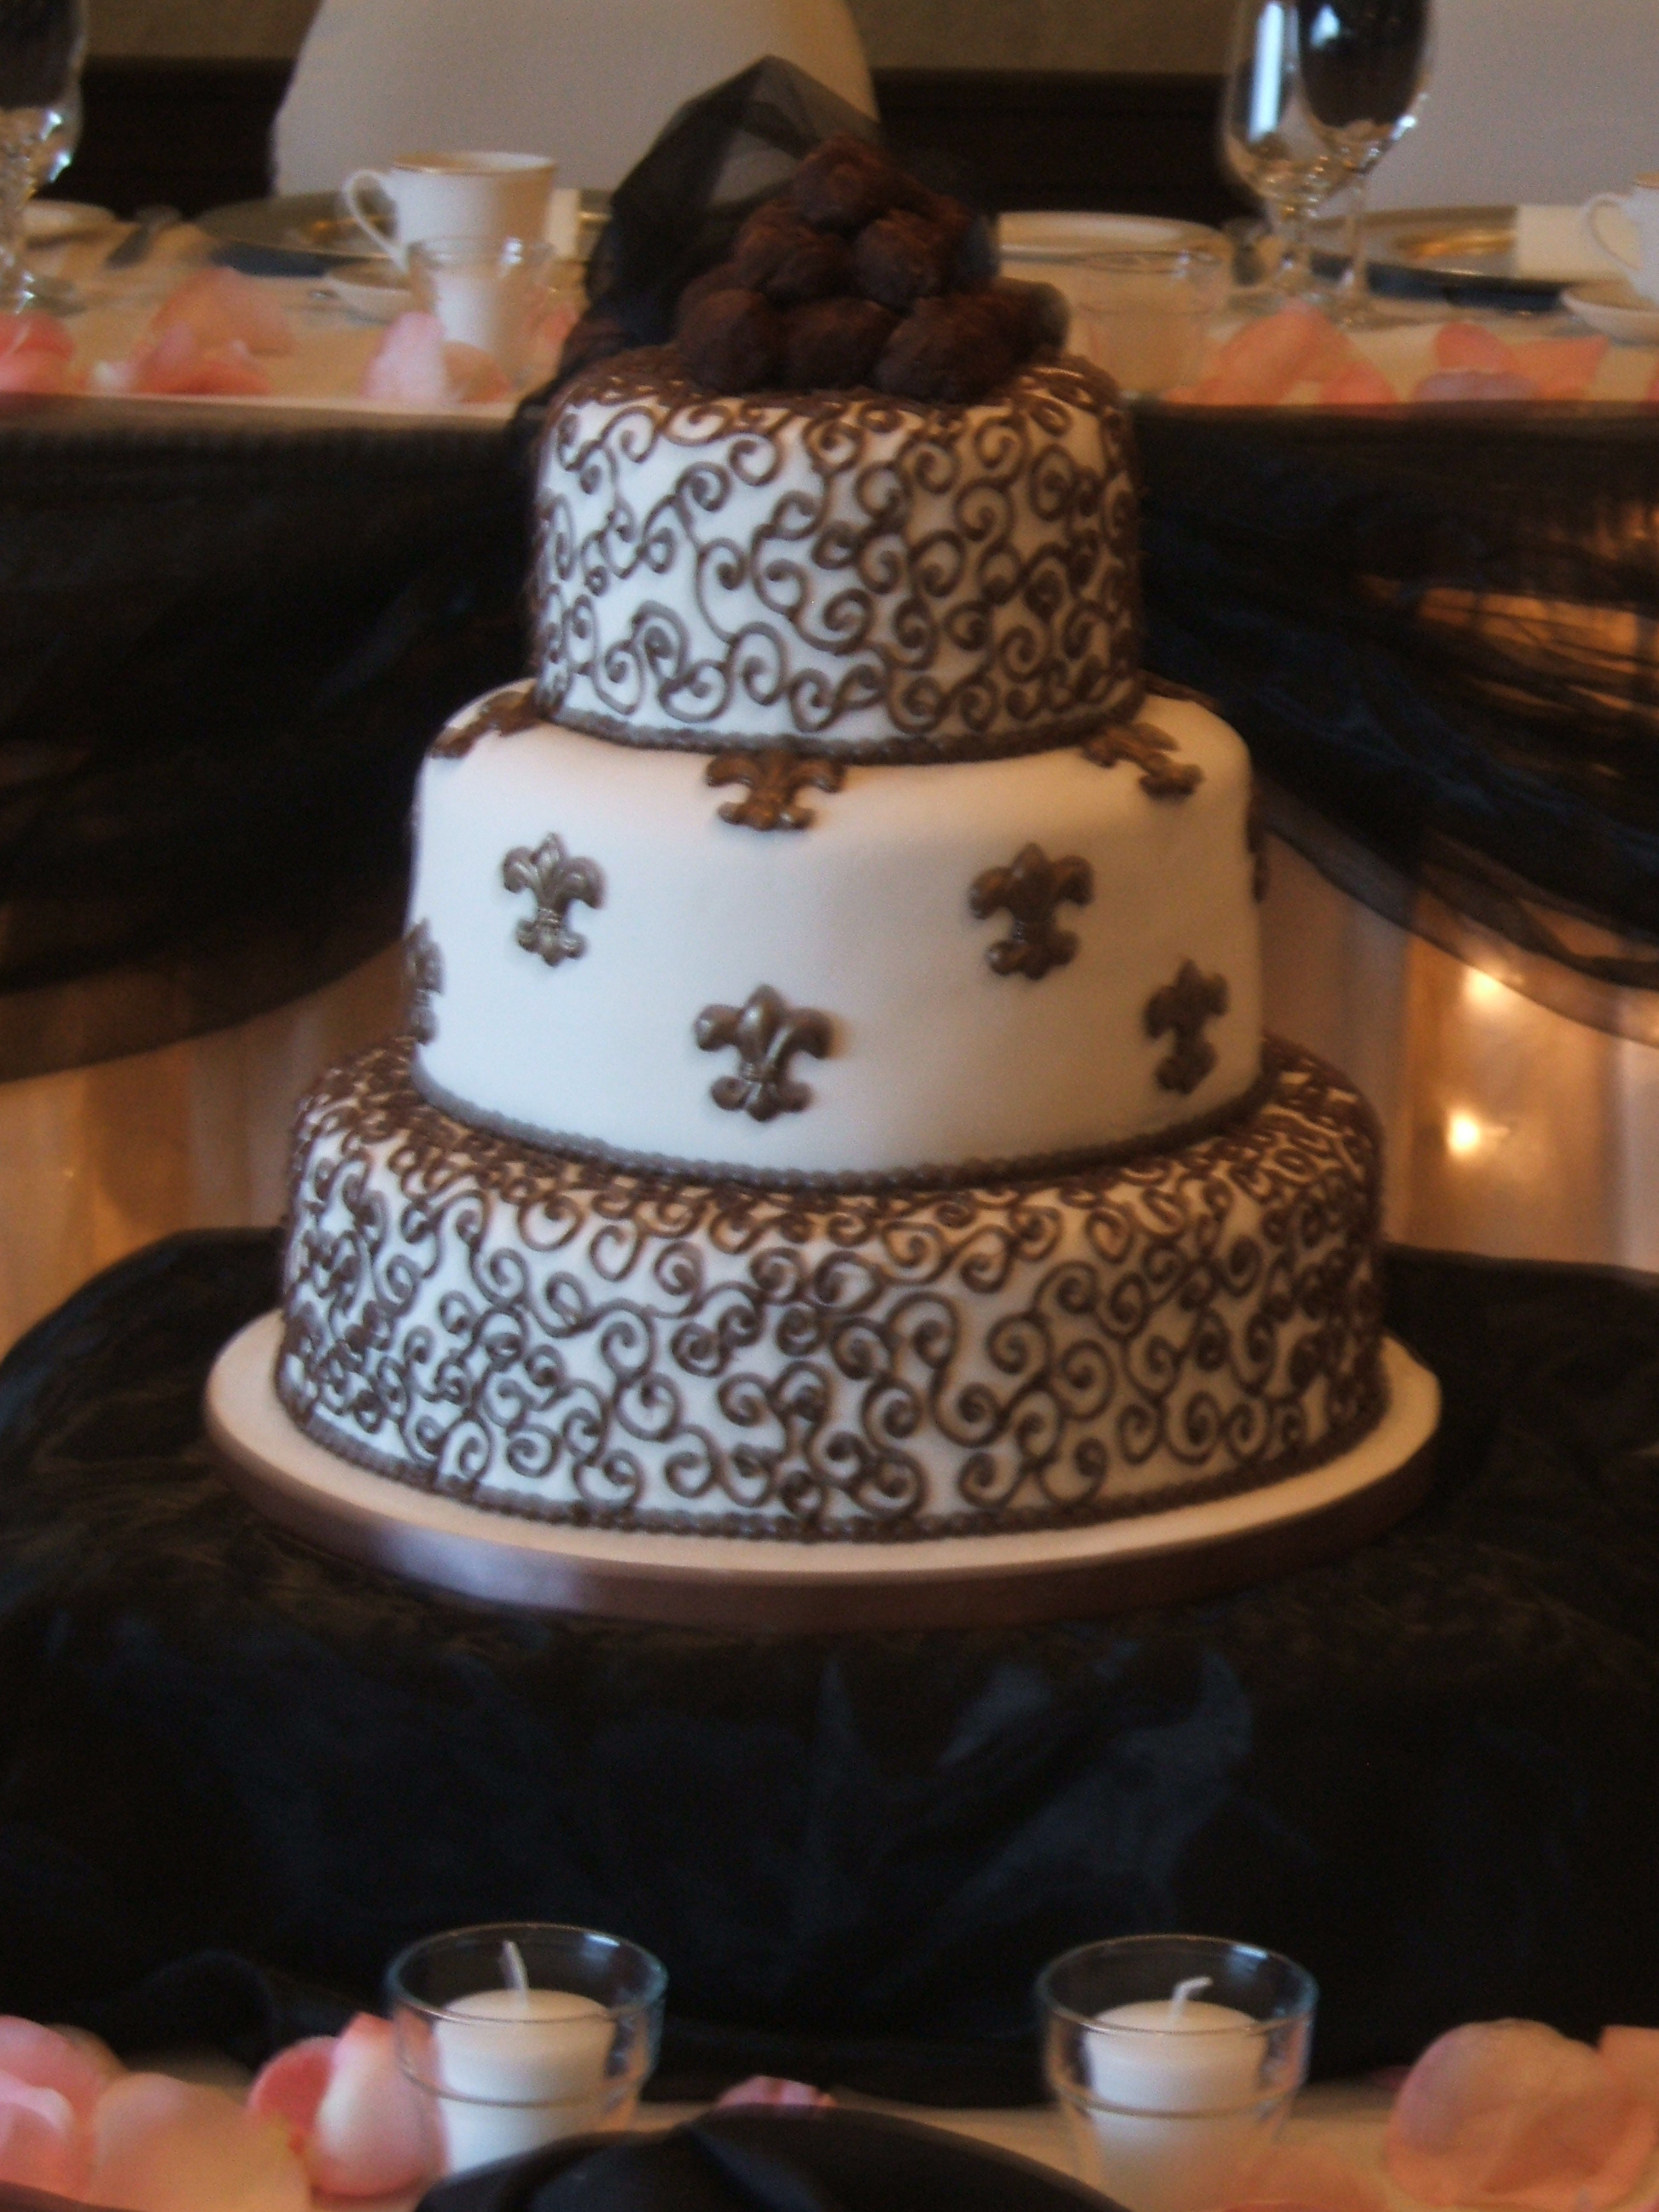 Rich Chocolate Truffle Cake With Chocolate Fleur De Lys And Real French Truffles On The Top